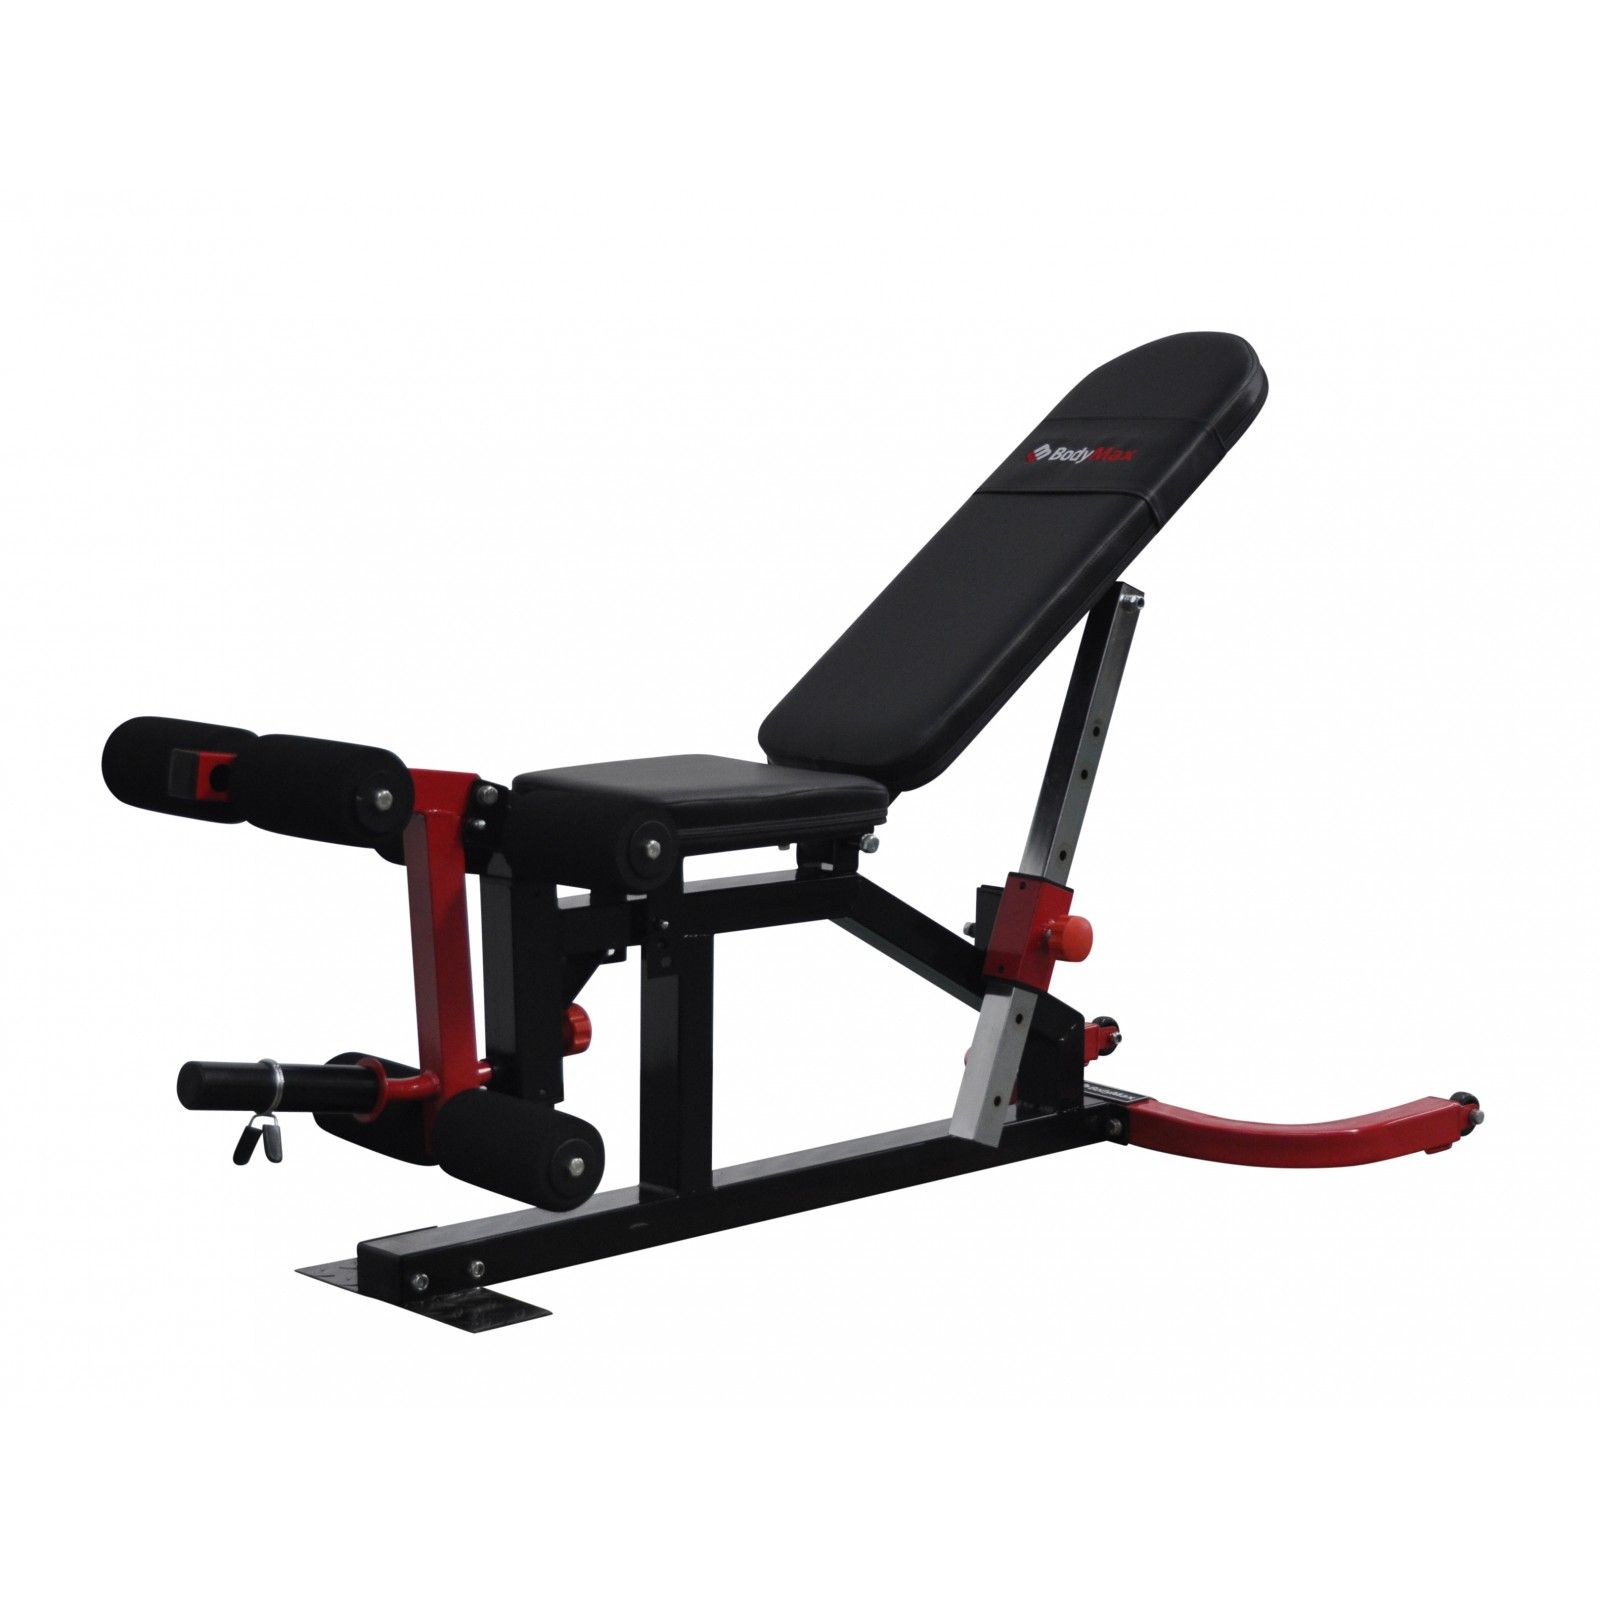 Bodymax Cf510 Elite Utility Flat Incline Decline Bench With Leg Curl And Preacher At Powerhouse